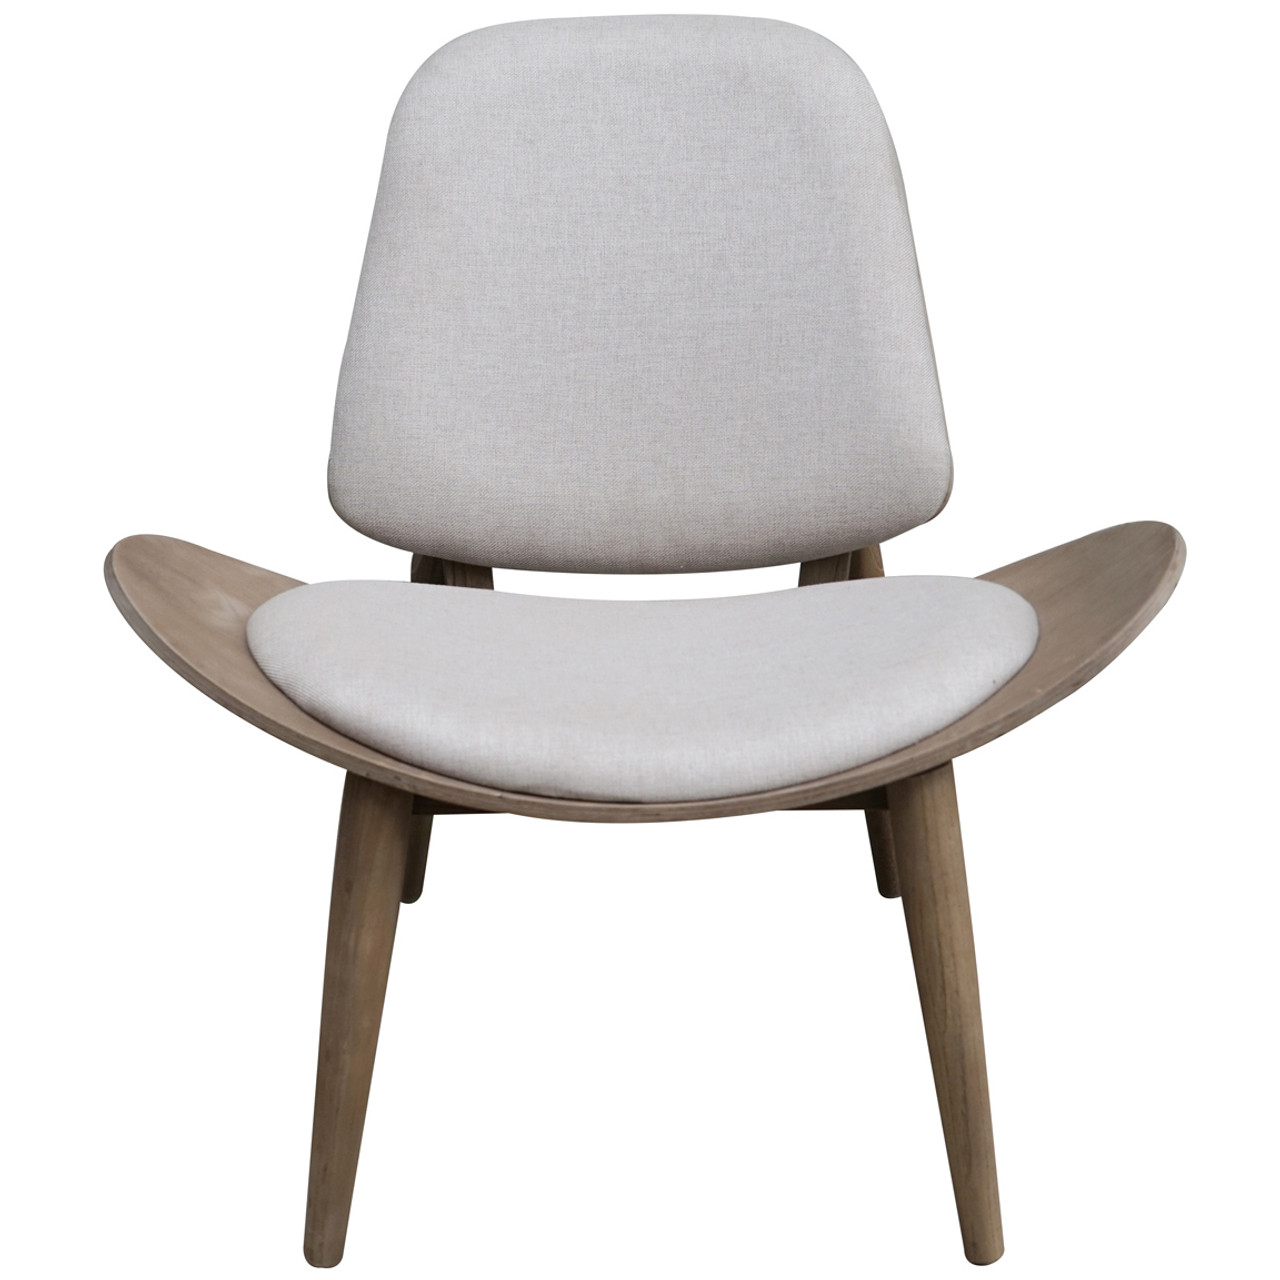 Tremendous Gray Modern Padded Fabric Shell Wing Armless Wooden Chair Gmtry Best Dining Table And Chair Ideas Images Gmtryco